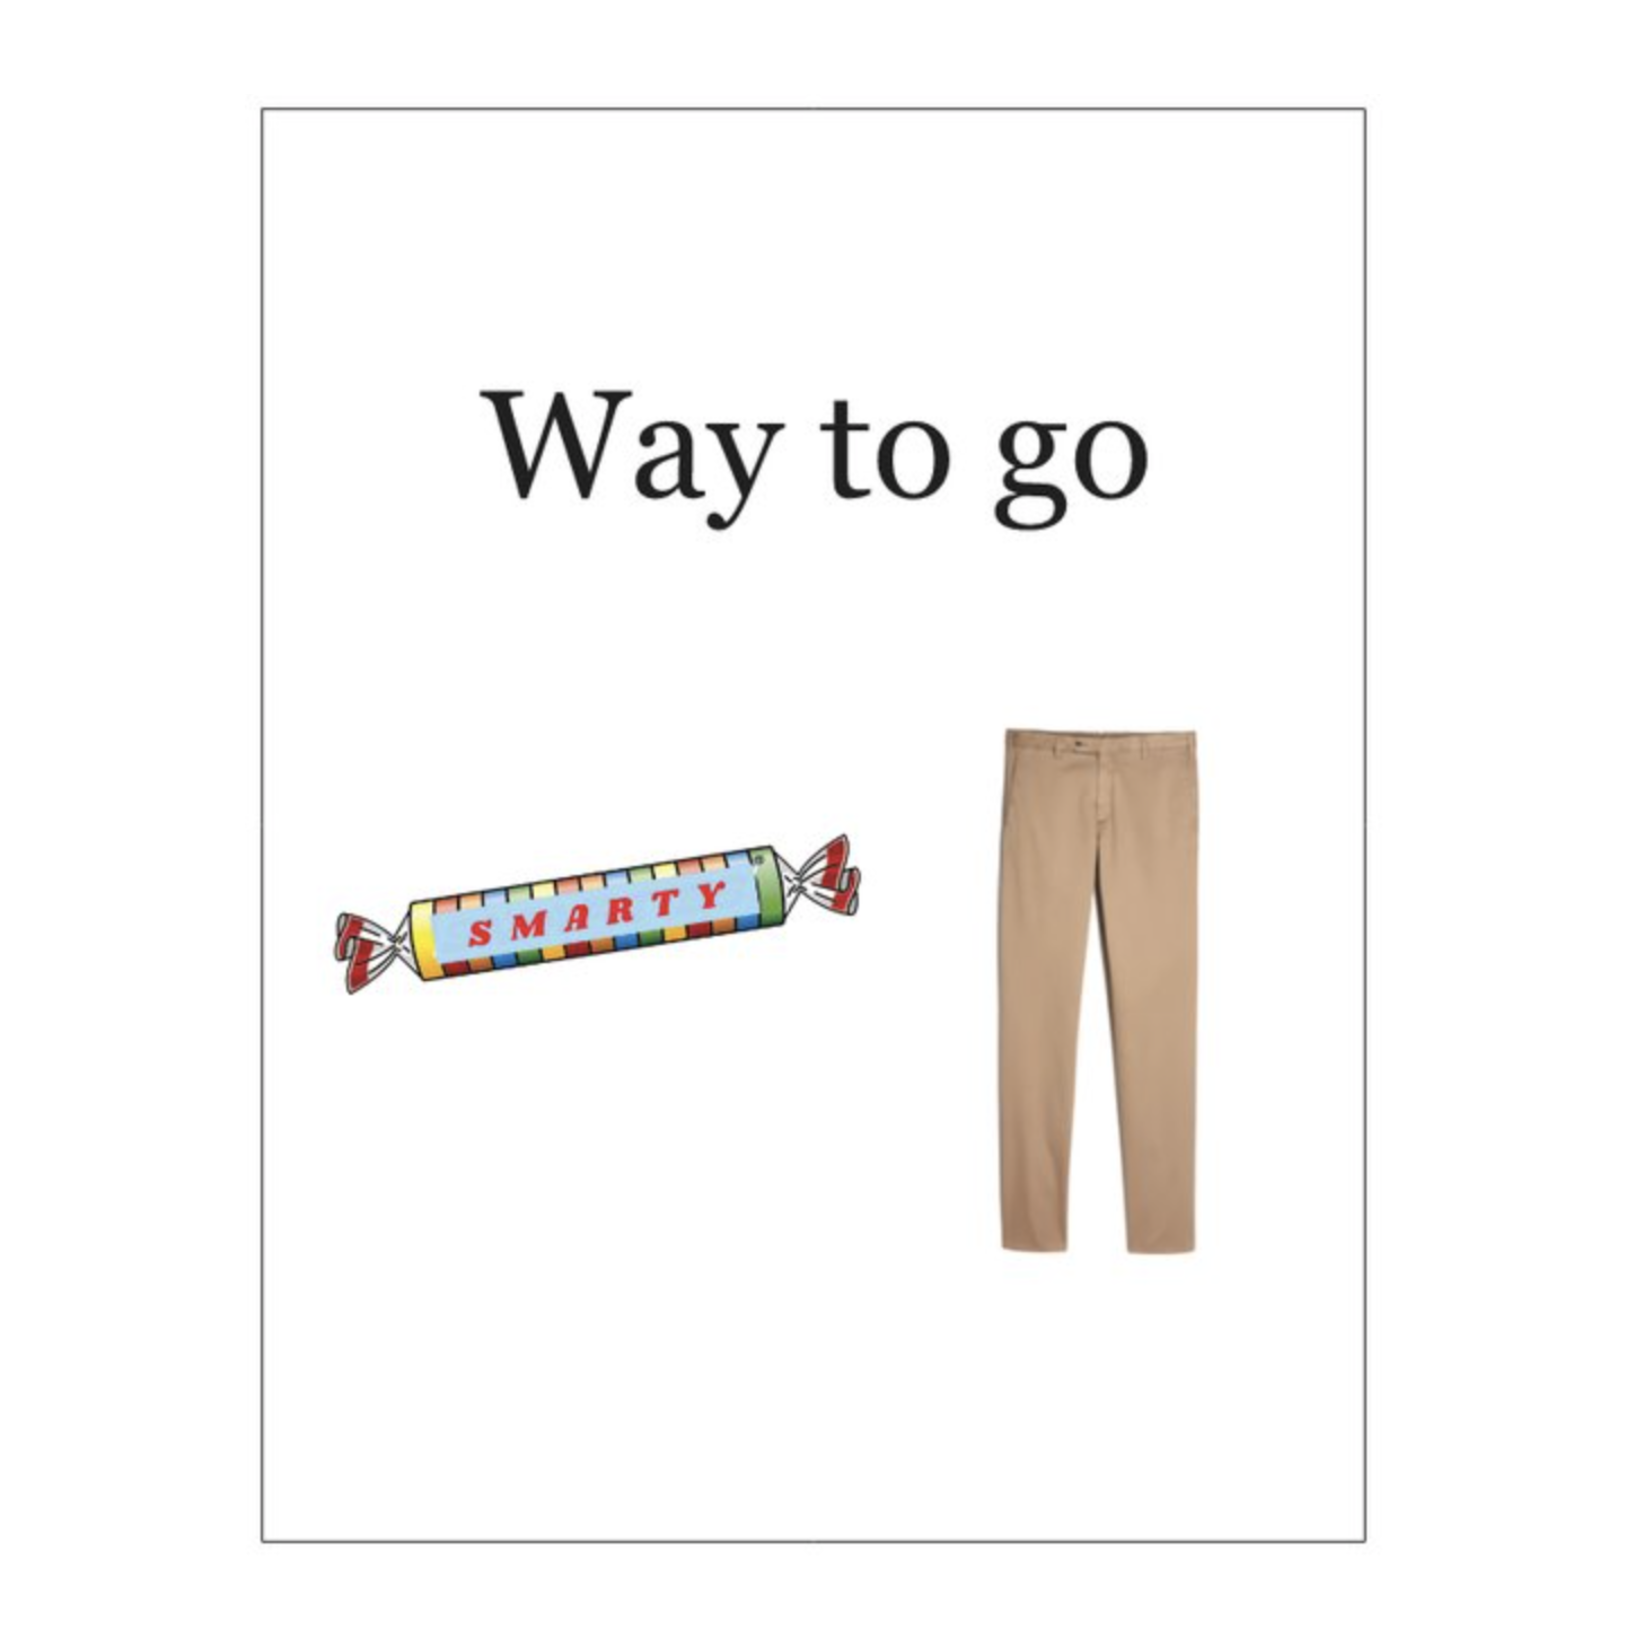 Bad Annie's Card #044 - Way To Go Smarty Pants